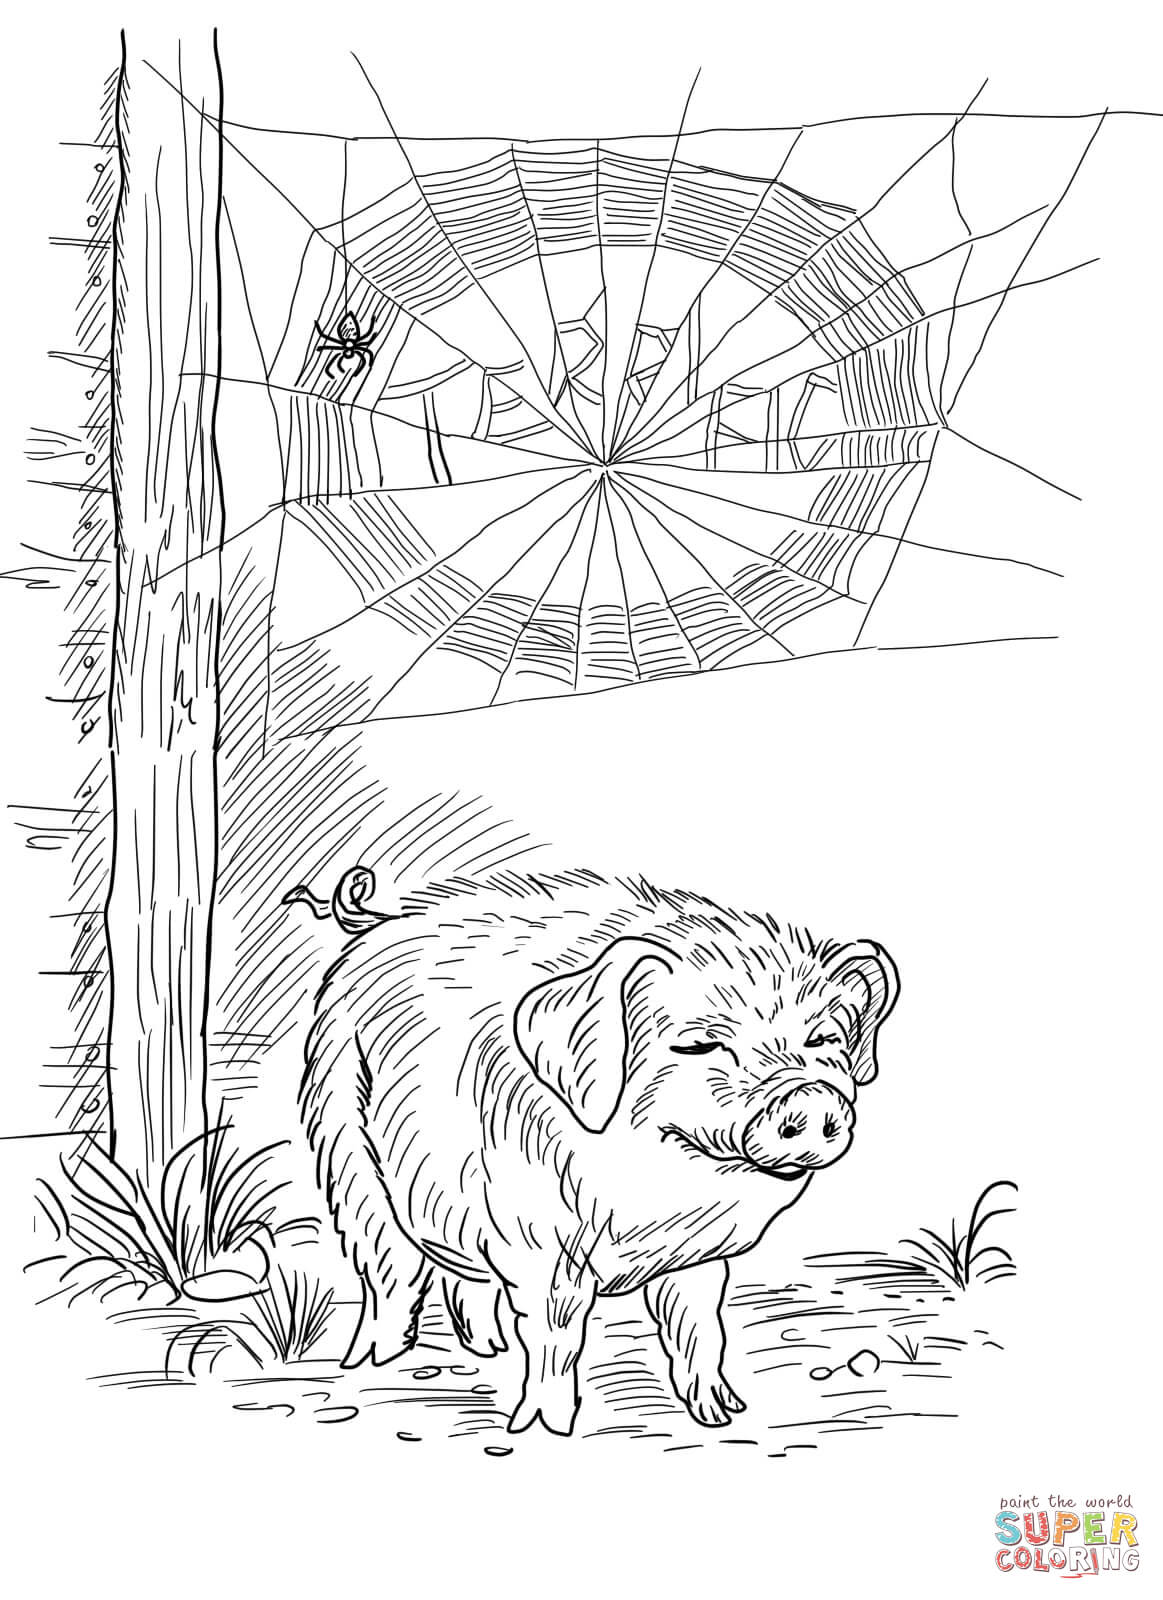 Free Charlottes Web Coloring Pages, Download Free Clip Art.